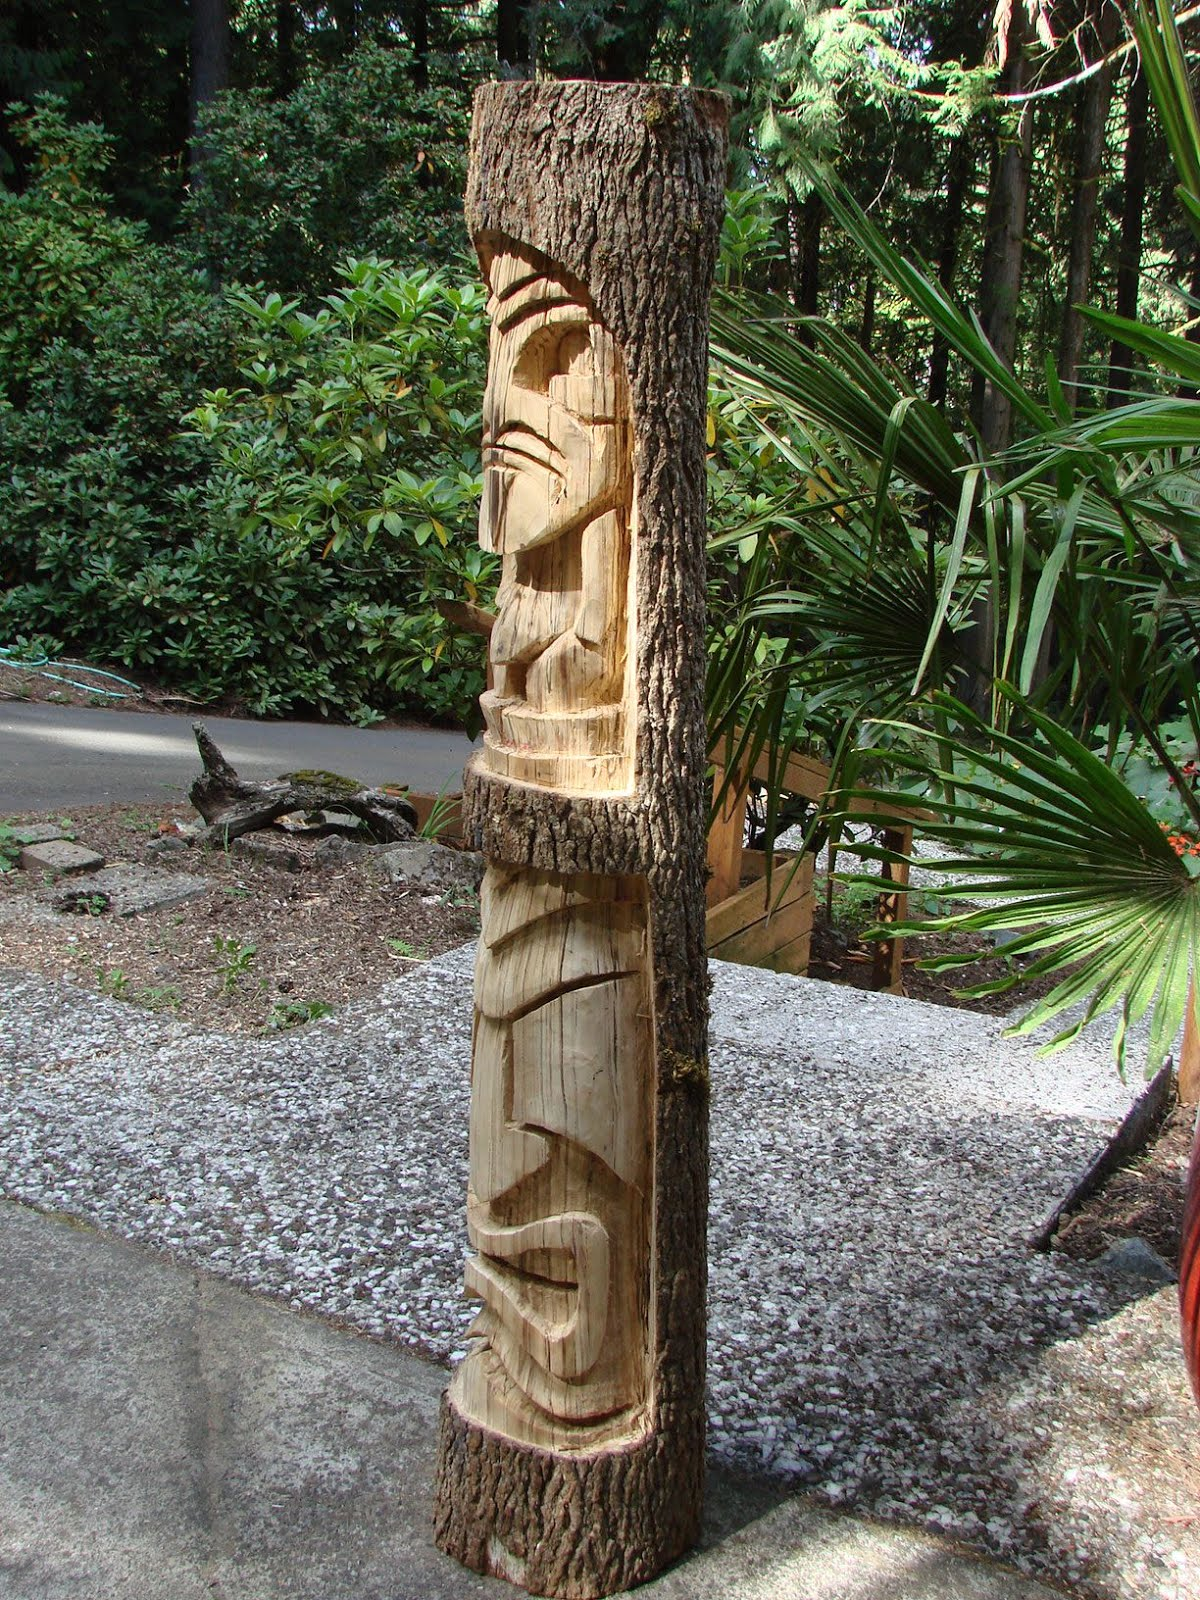 It is modeled after a tiki at Don the Beachcombers.